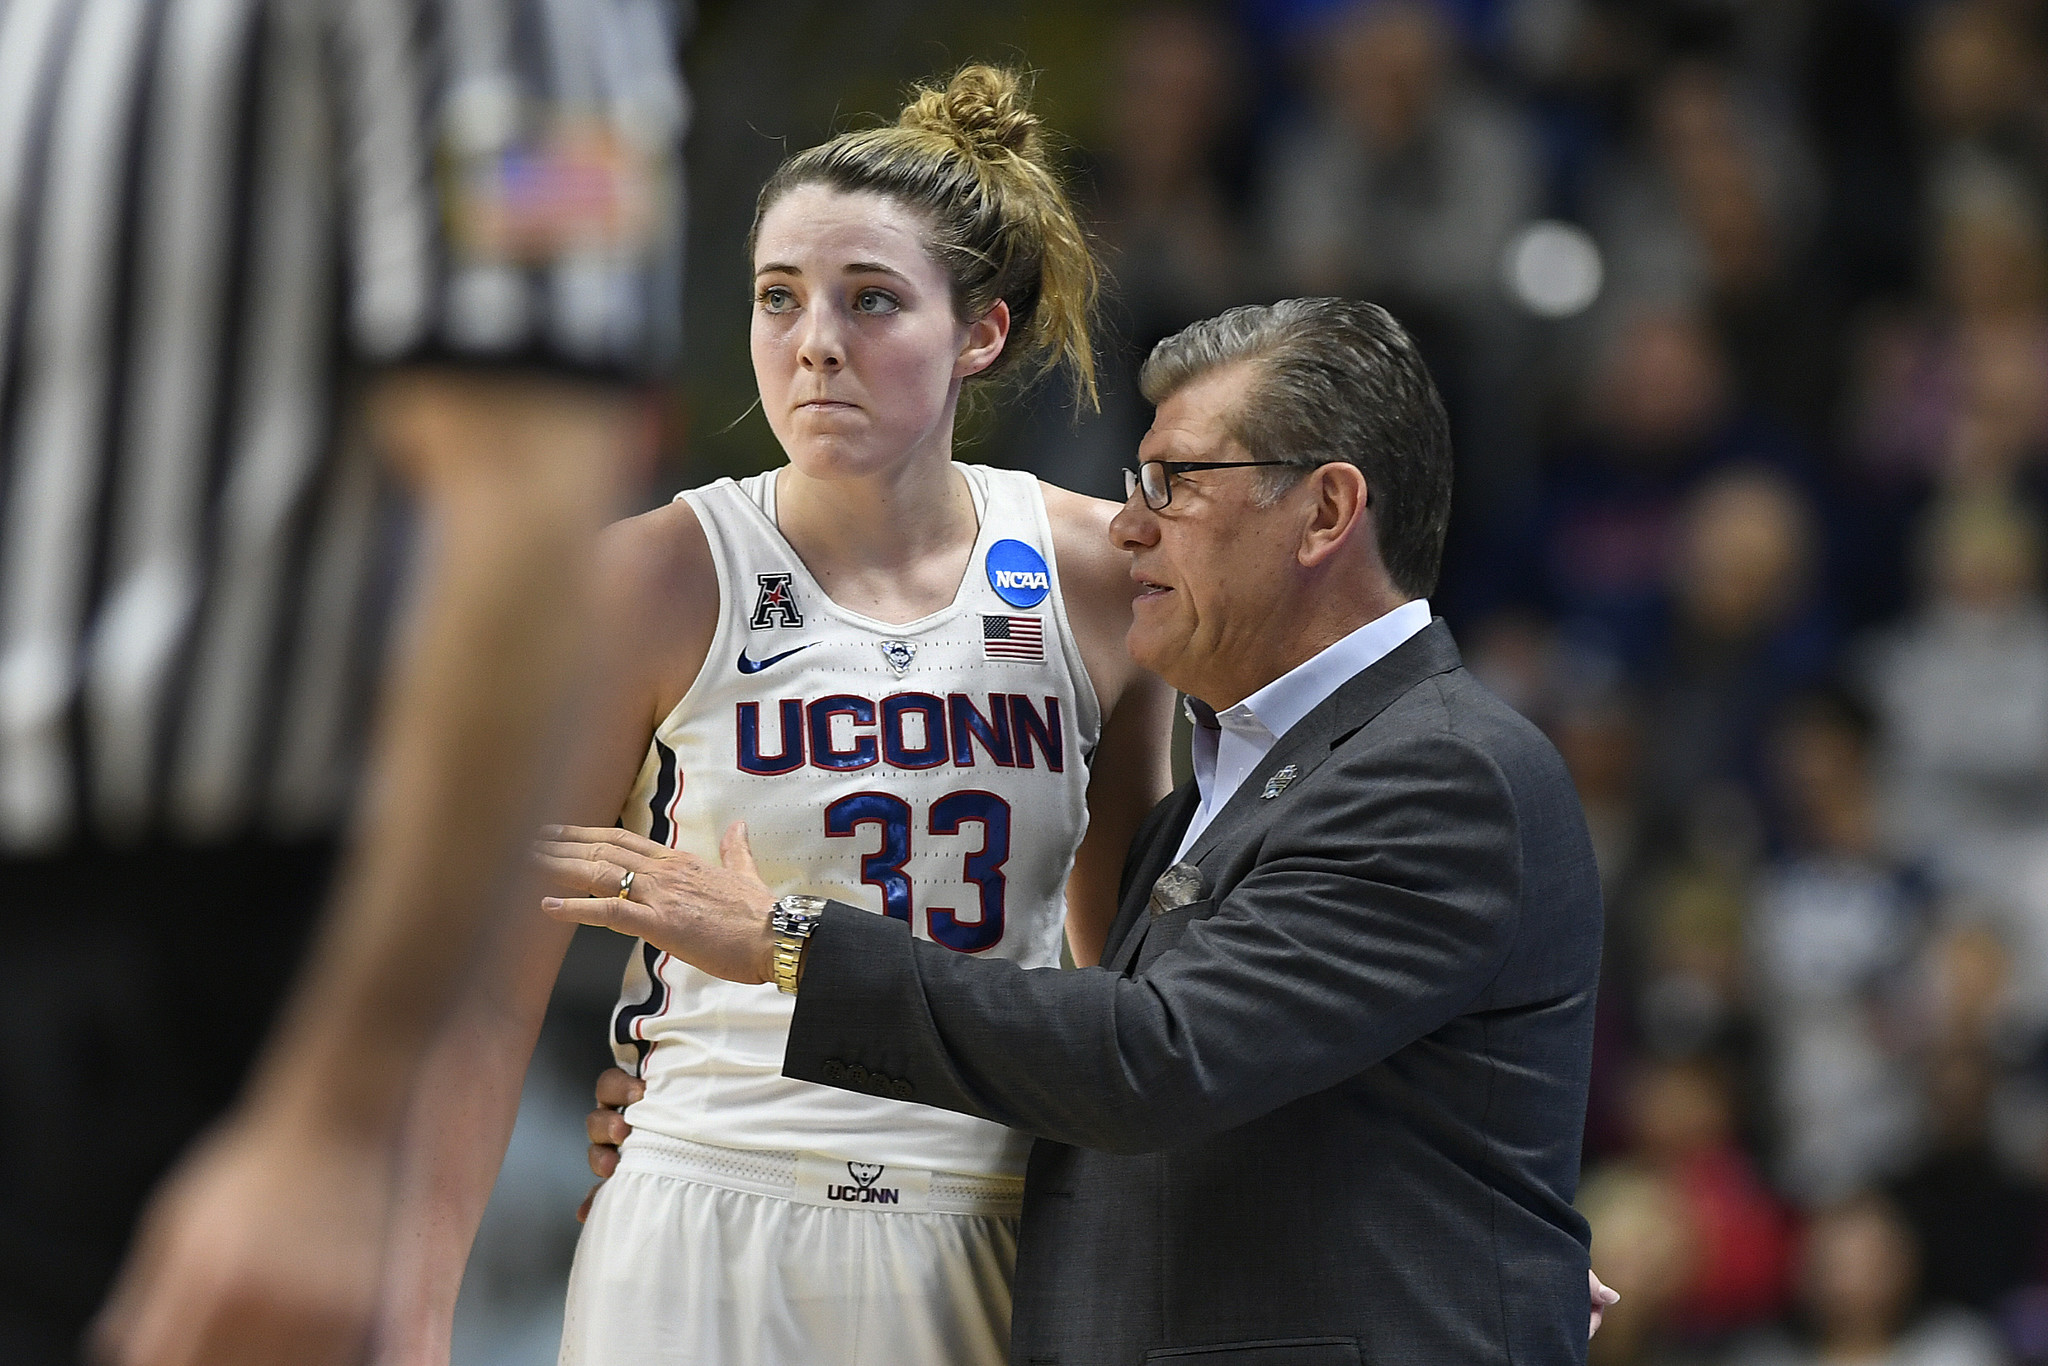 as usual, uconn women have strong nonconference schedule that